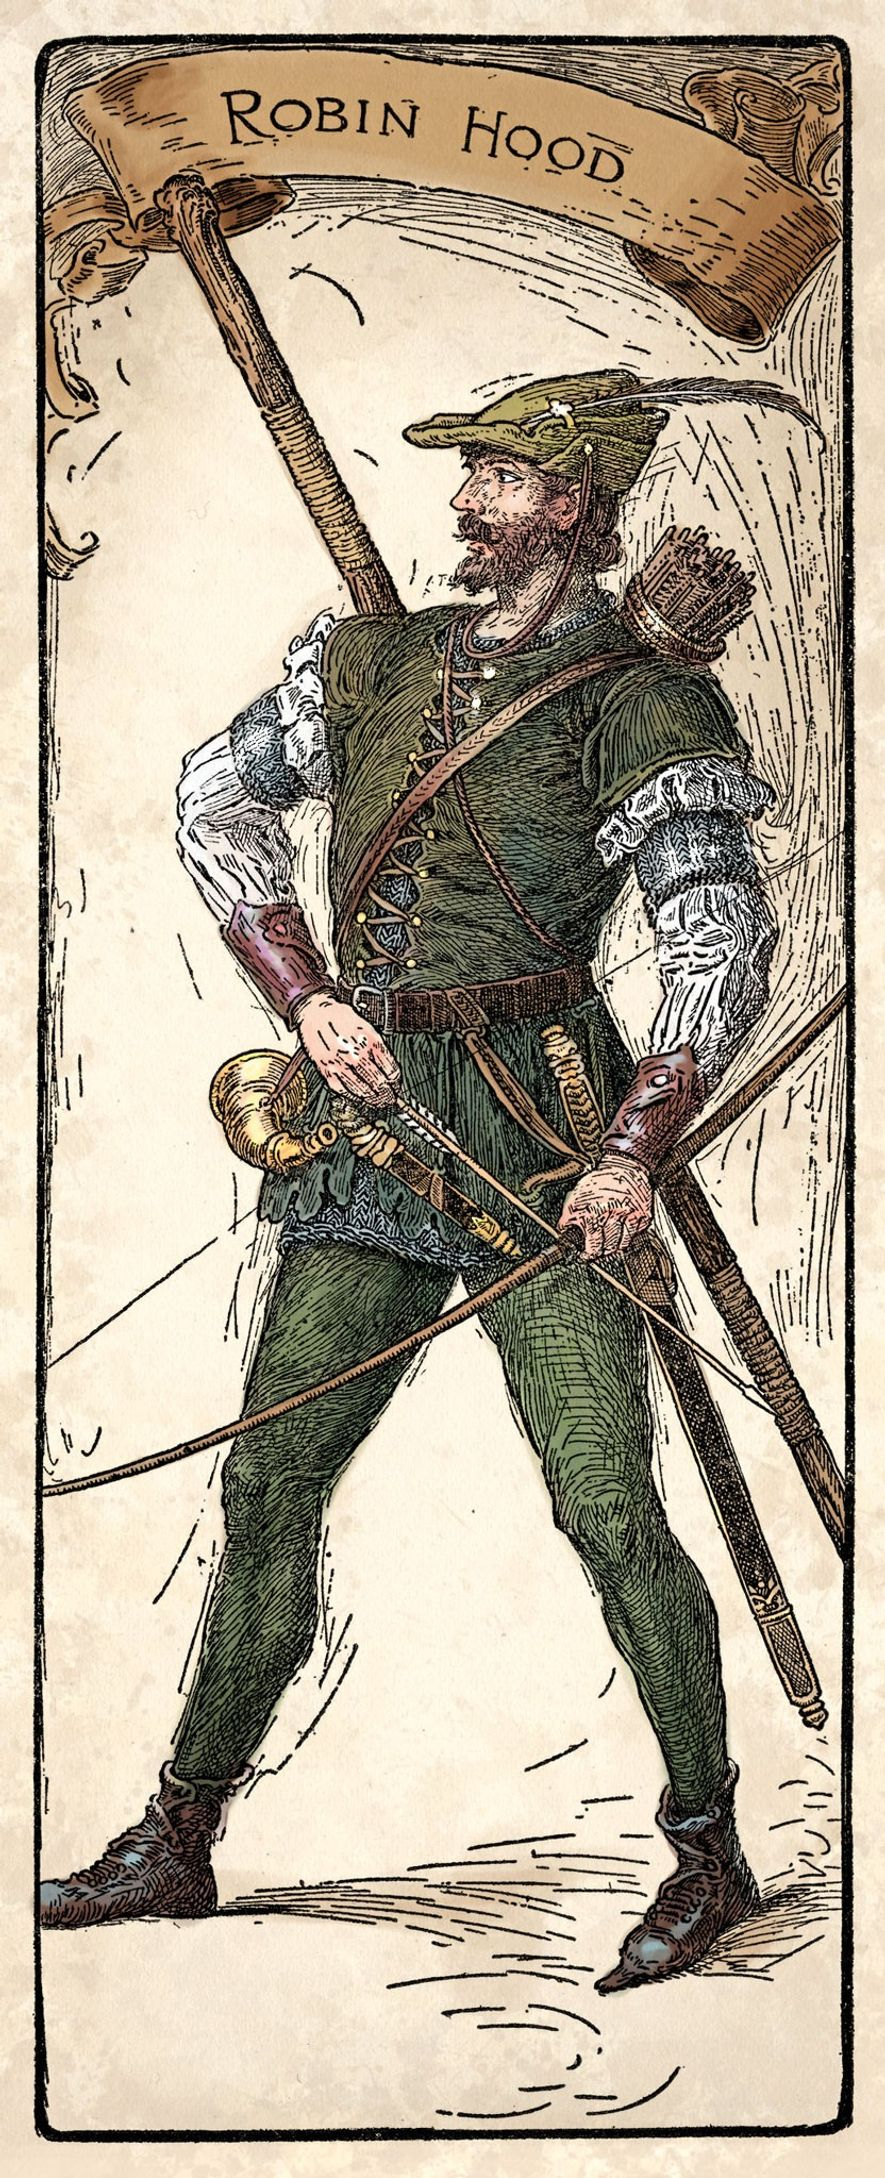 From the outset, Robin Hood was depicted as a rebel who pitted himself against authority. Even ...